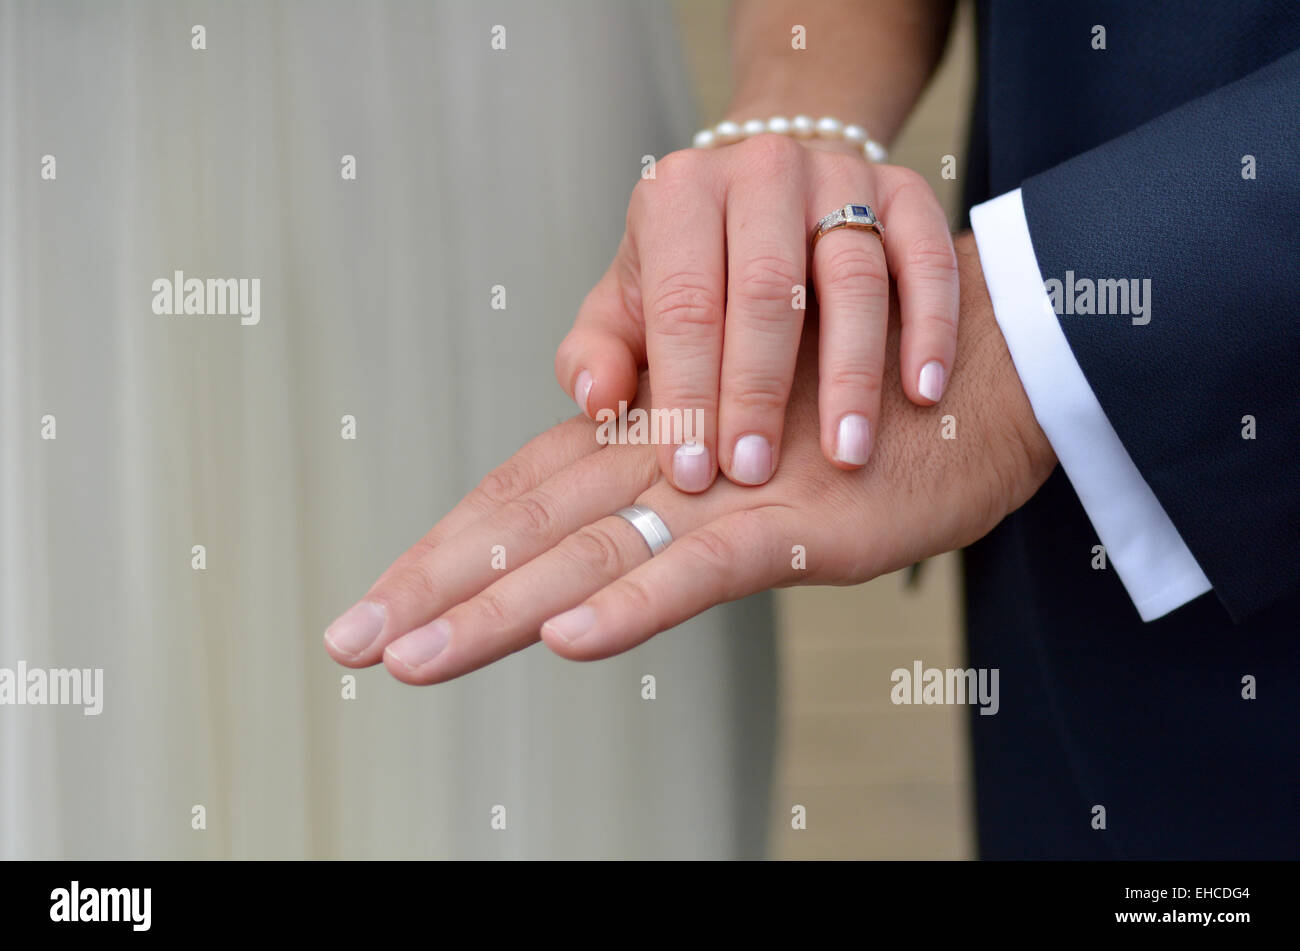 Exchange Of Wedding Rings Stock Photos & Exchange Of Wedding Rings ...